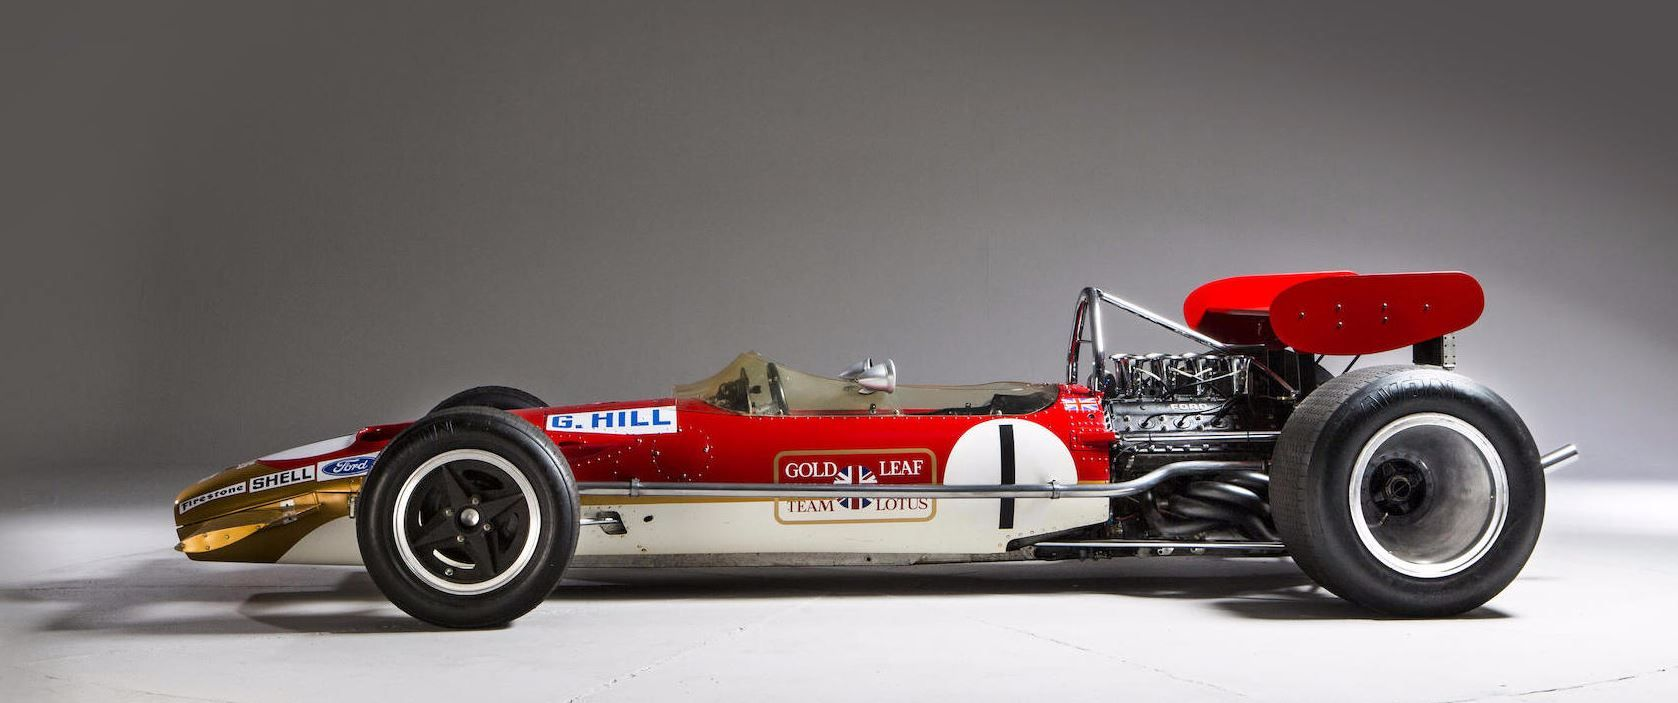 1968-69 LOTUS-COSWORTH FORD TYPE 49B FORMULA 1 AND TASMAN RACING ...